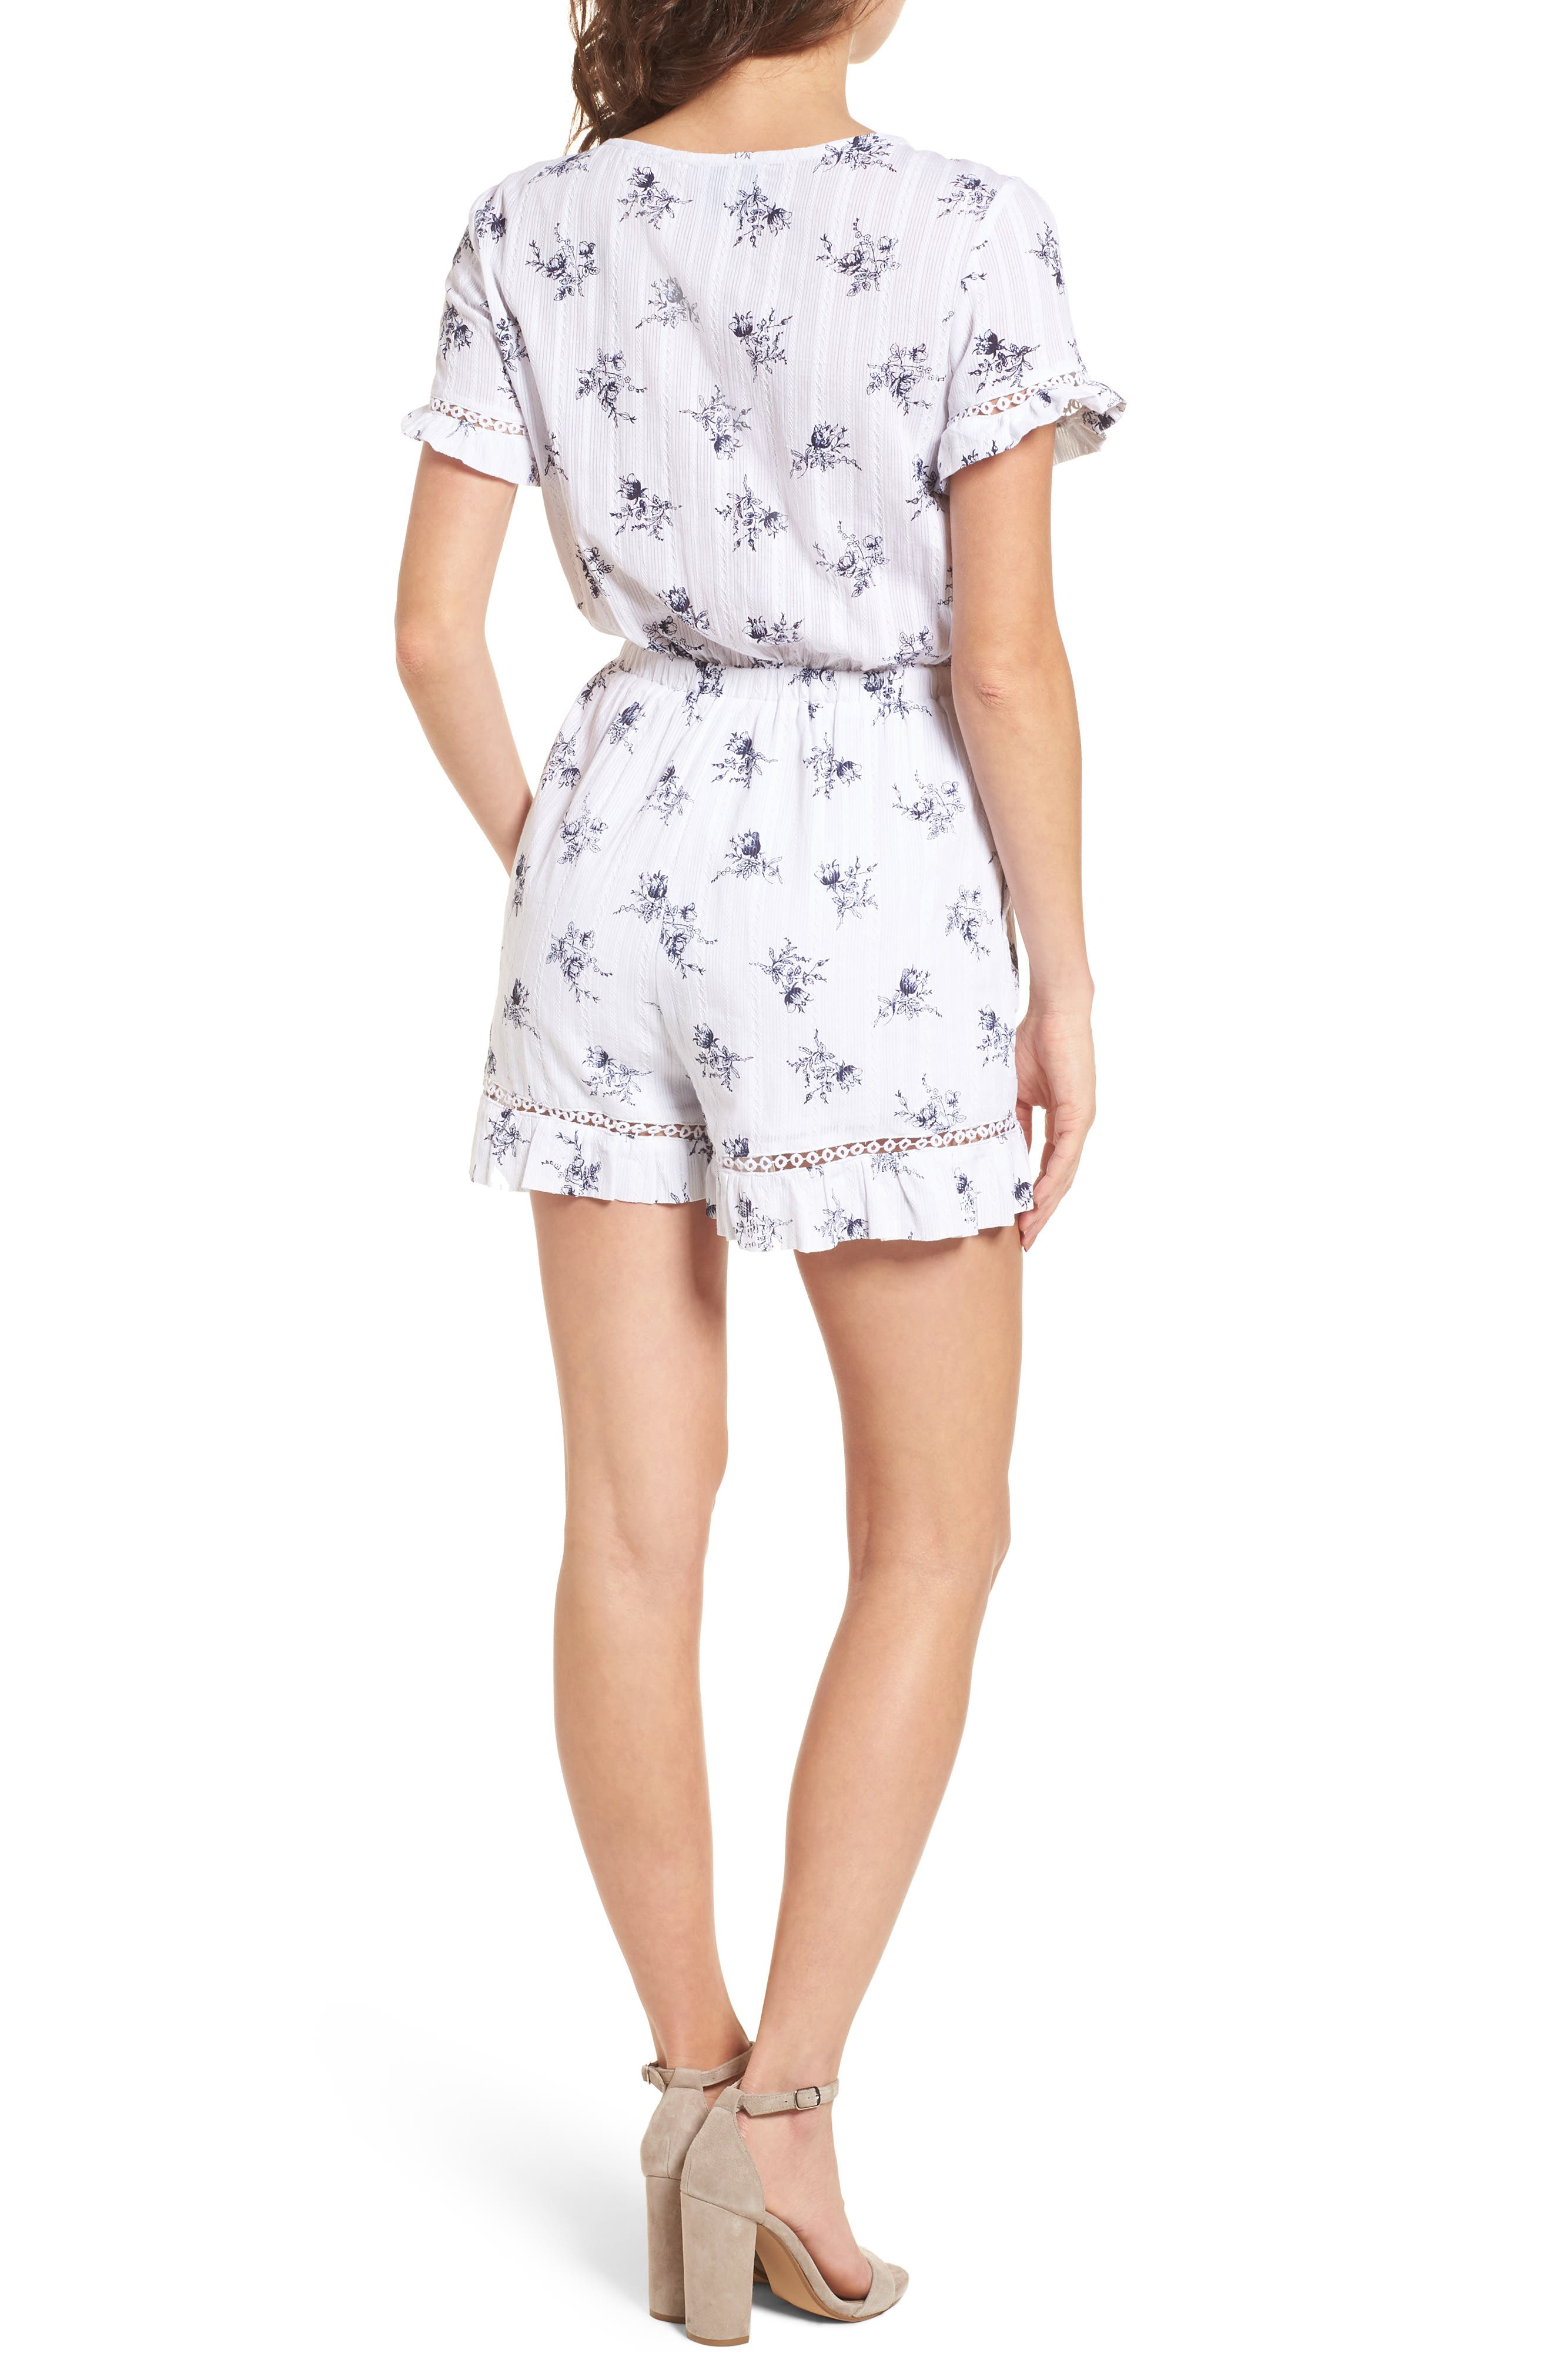 Tie Front Romper,                             Alternate thumbnail 3, color,                             White/ Navy